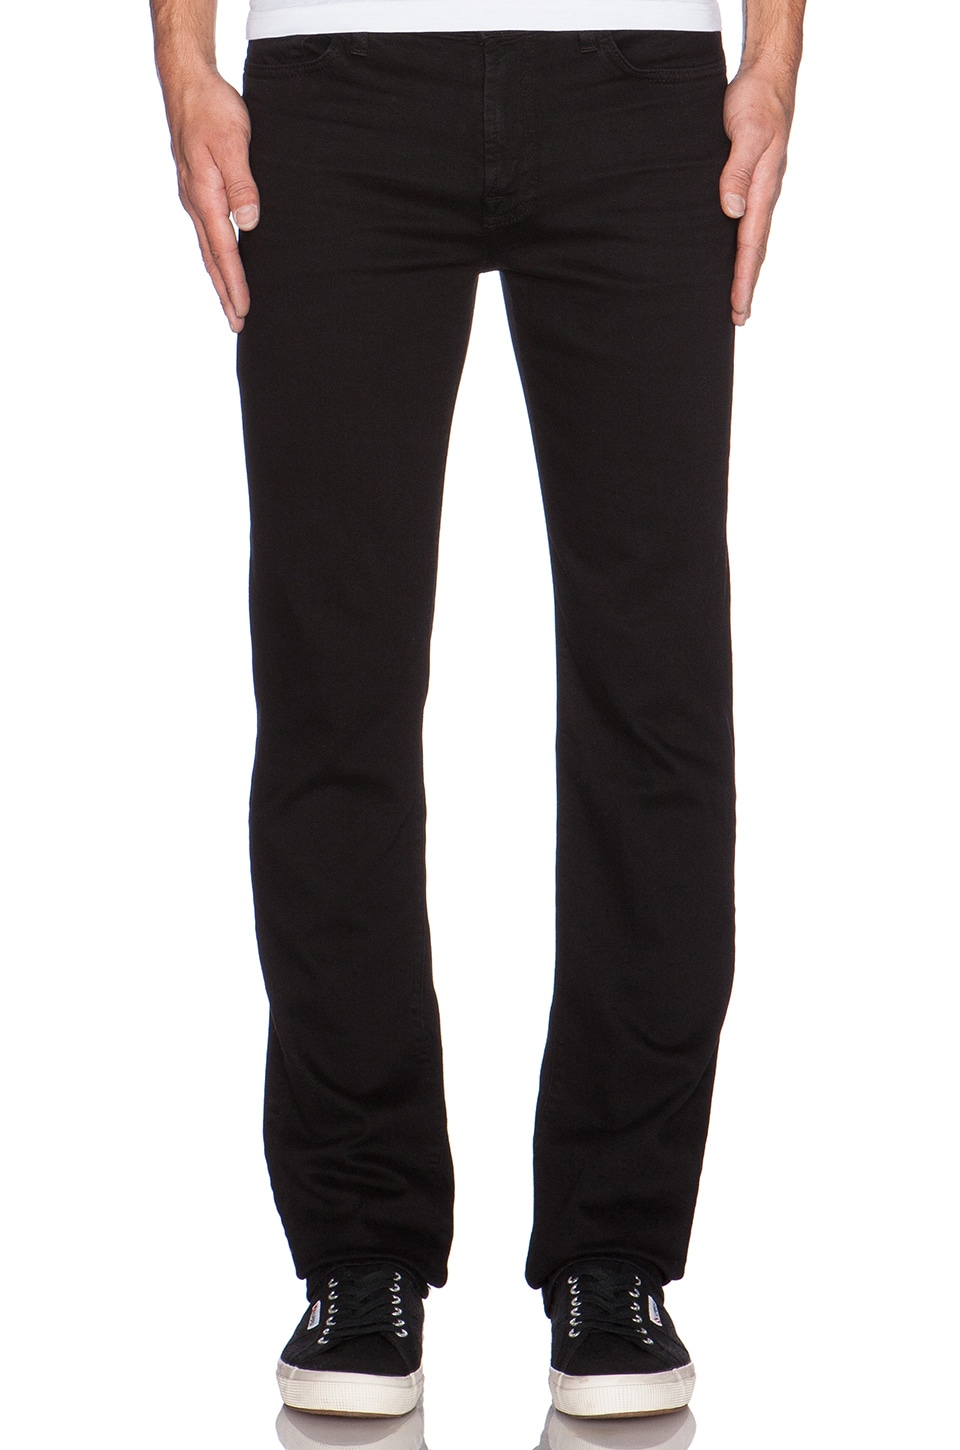 7 For All Mankind Luxe Performance Slimmy in Nightshade Black